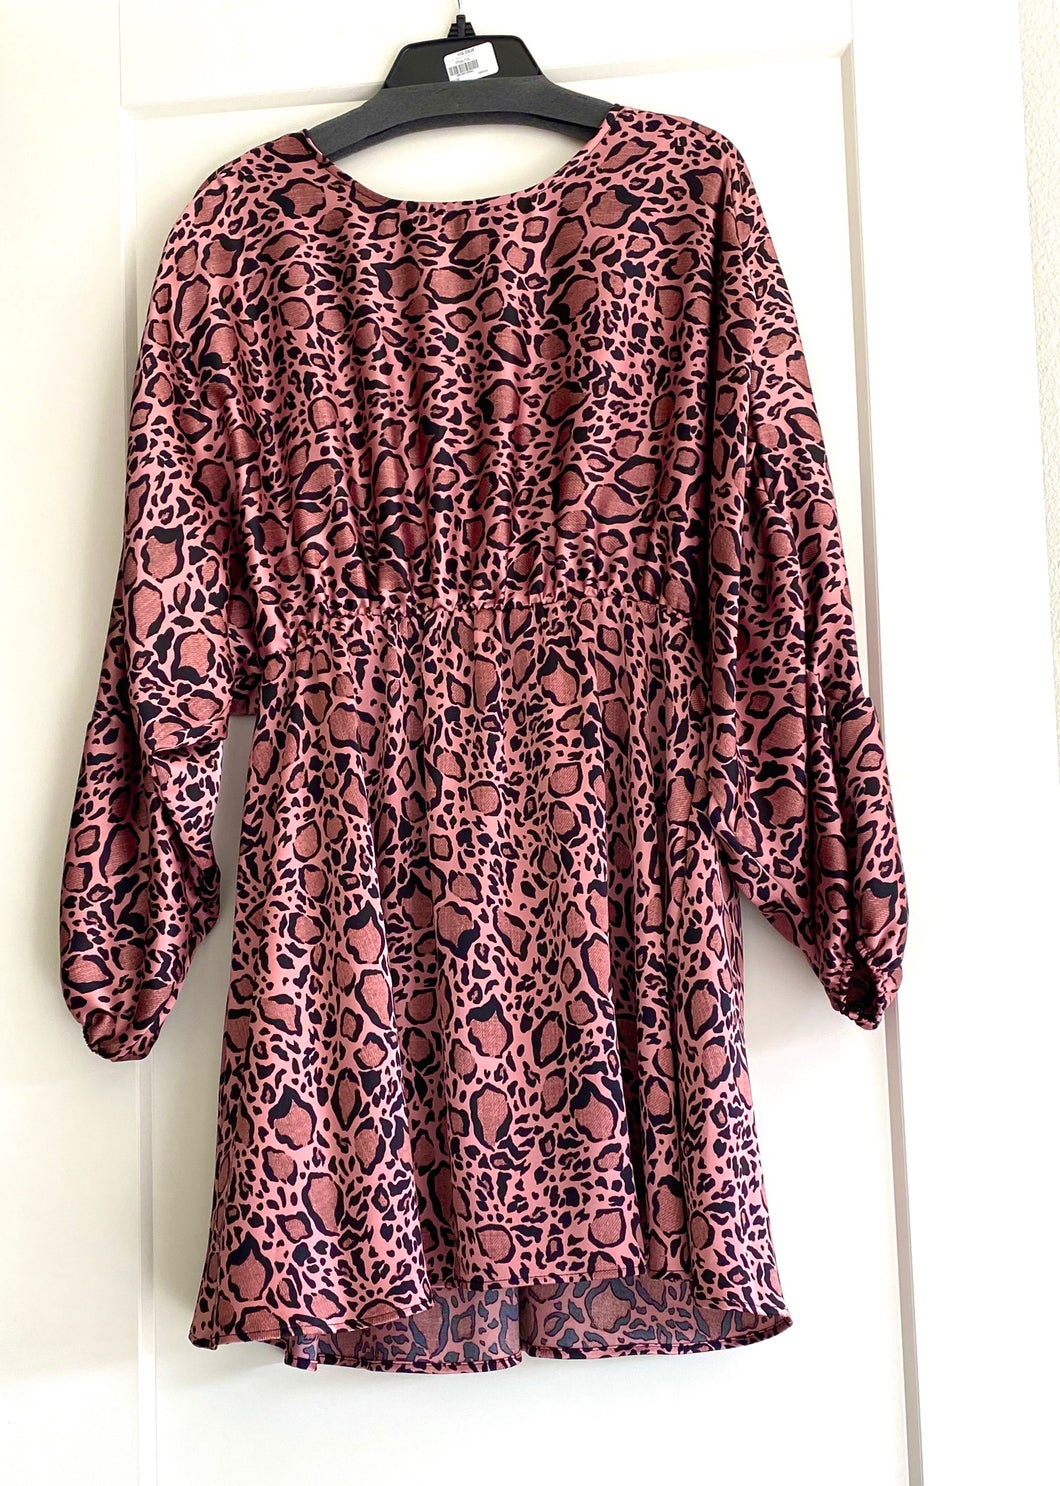 Pink leopard Blouse Dress